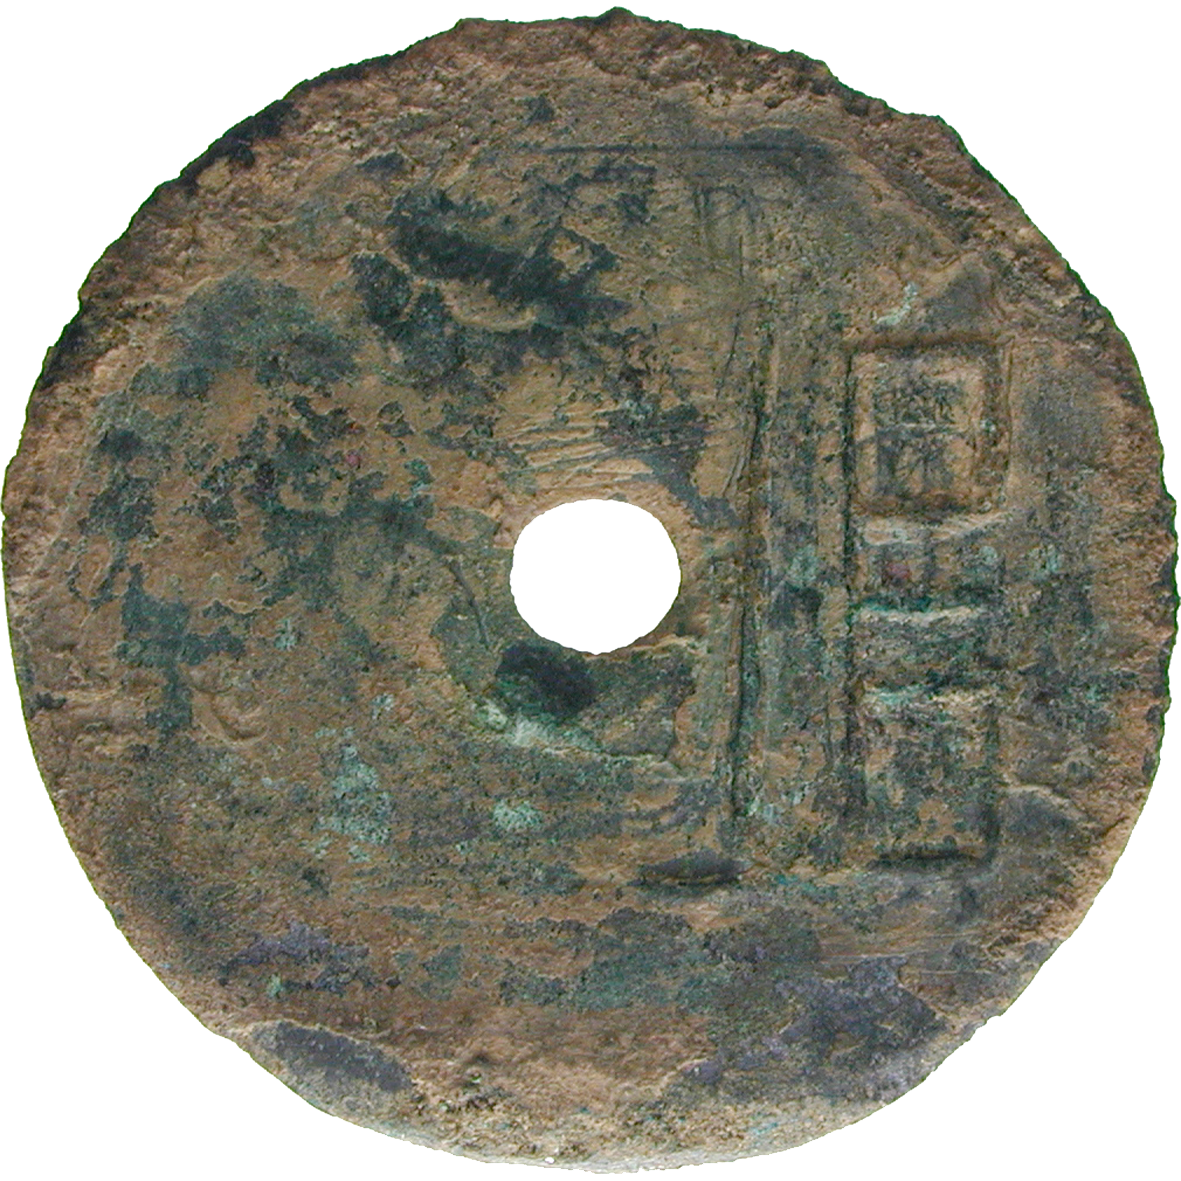 China, County of Wei, Ring Coin Huanqian (obverse)